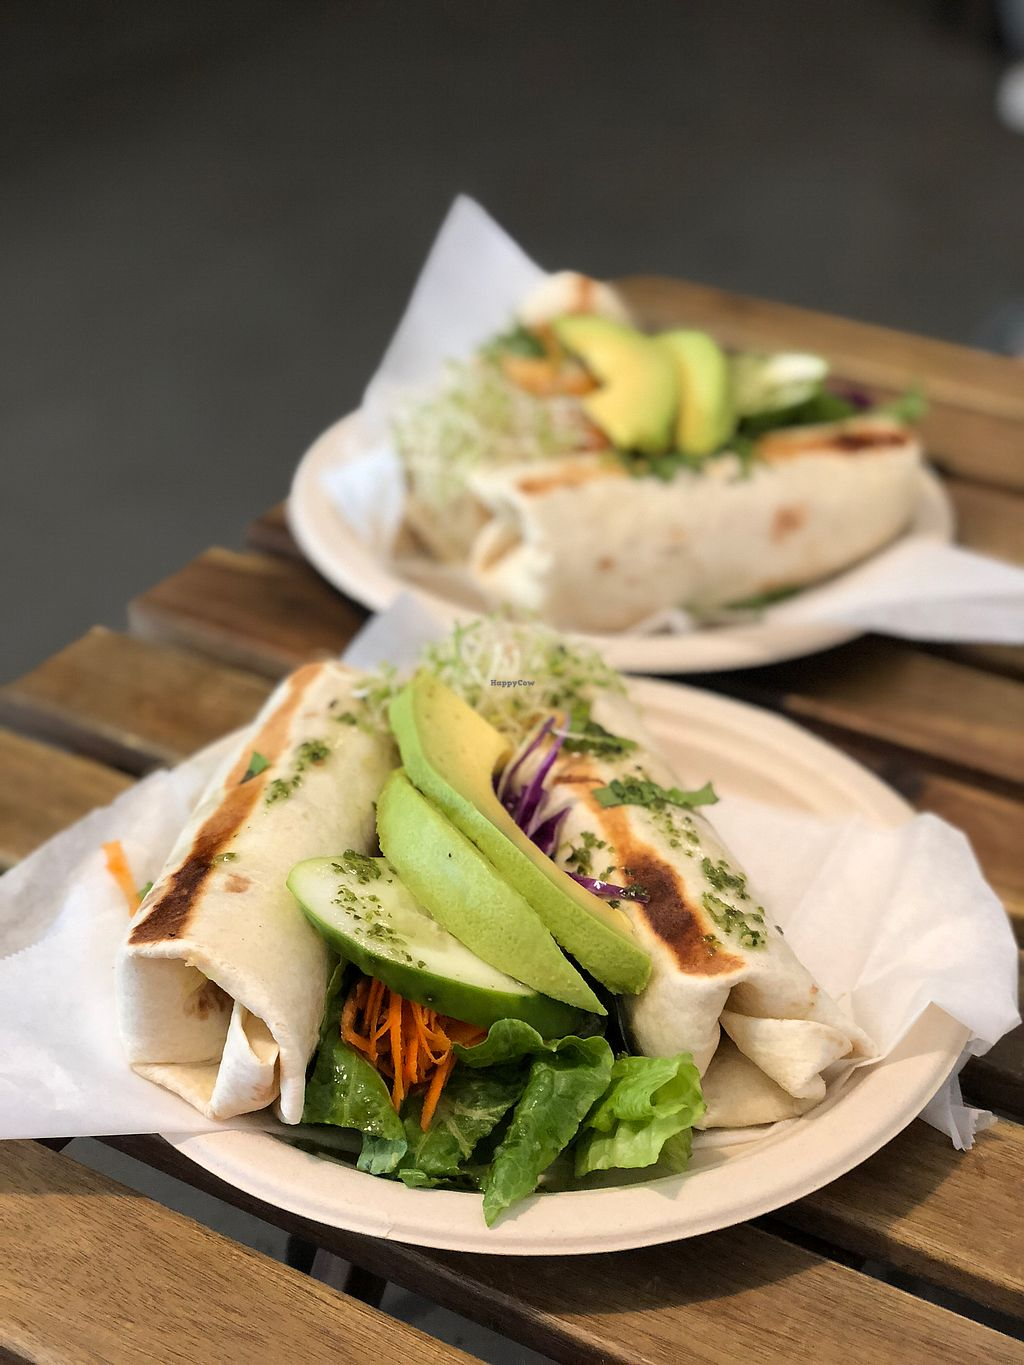 """Photo of Bori Vegan  by <a href=""""/members/profile/Ethan"""">Ethan</a> <br/>The burritos are off the hook! <br/> March 17, 2018  - <a href='/contact/abuse/image/98342/372012'>Report</a>"""